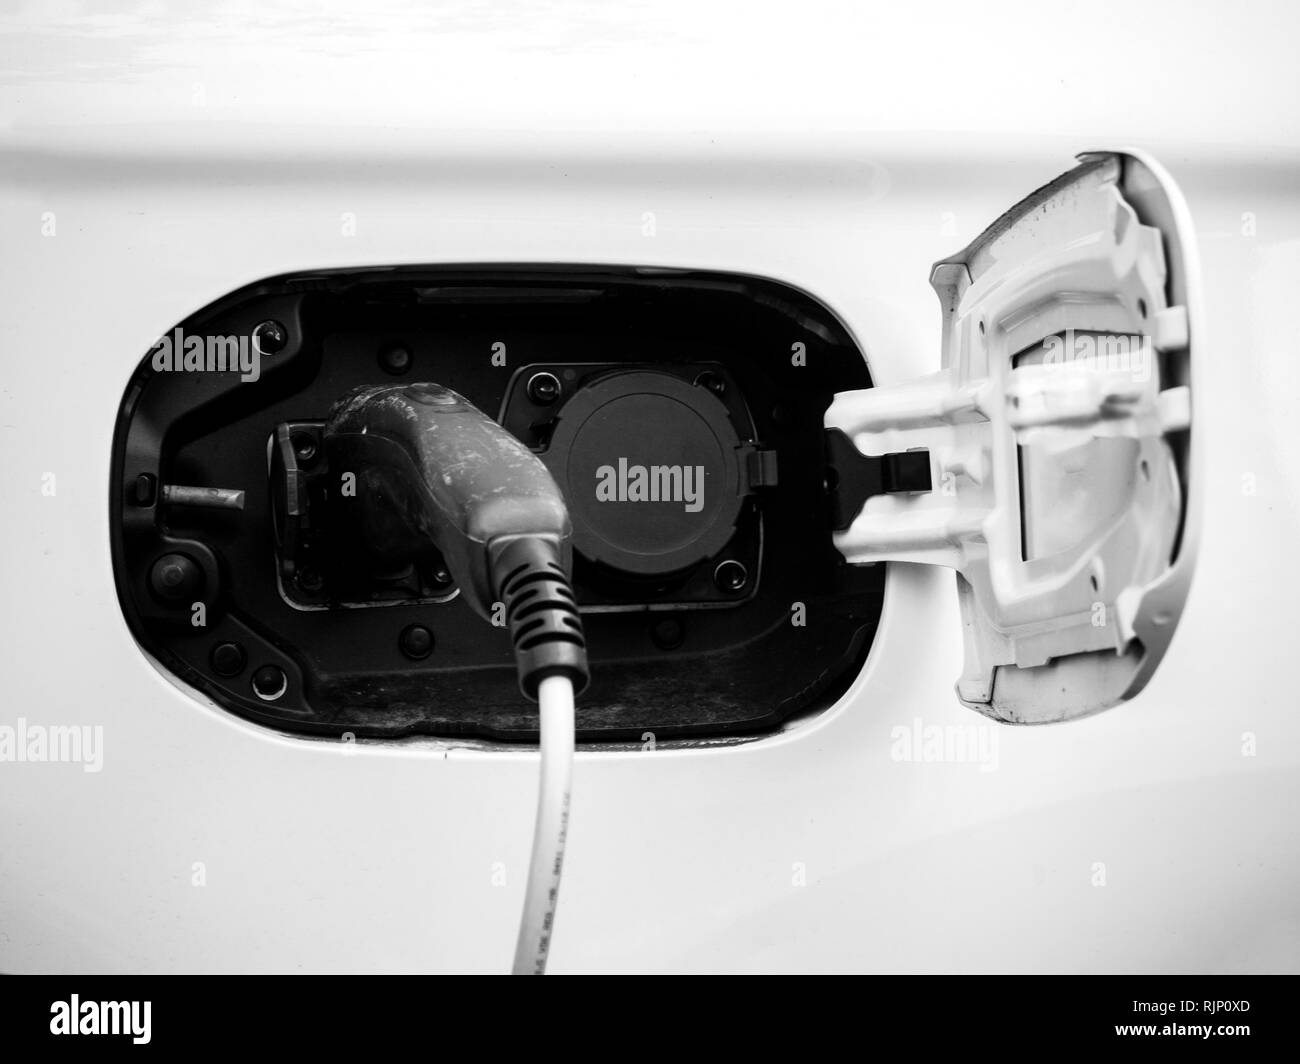 Energy power cable of electric car charger being plugged in at the modern refueling center station - Stock Image